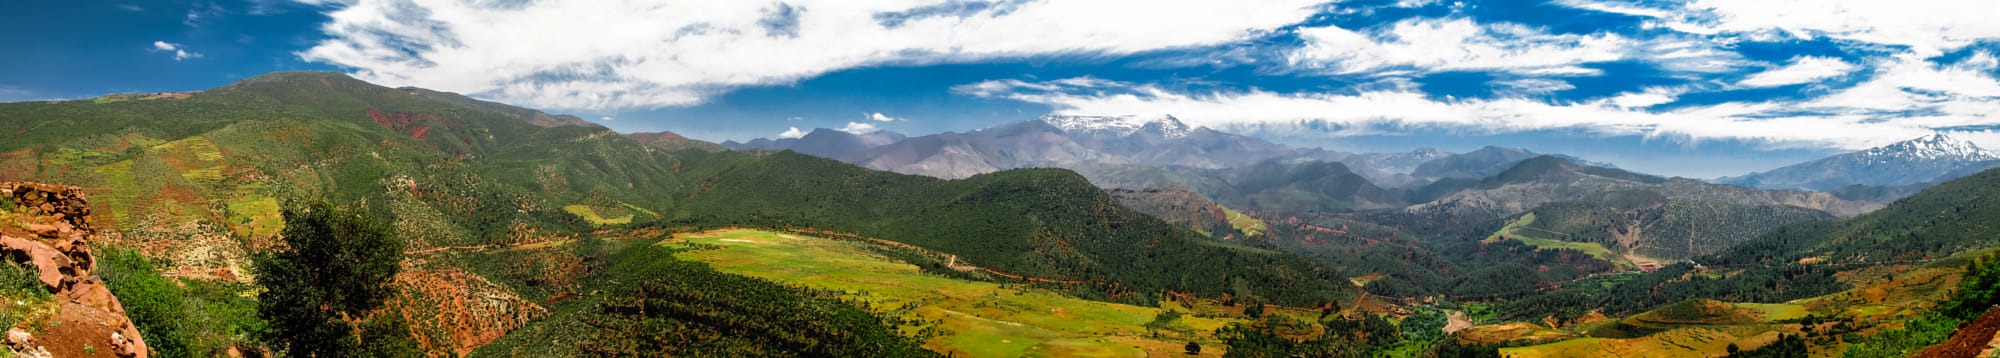 Panorama view to Atlas mountains and valley, Morocco